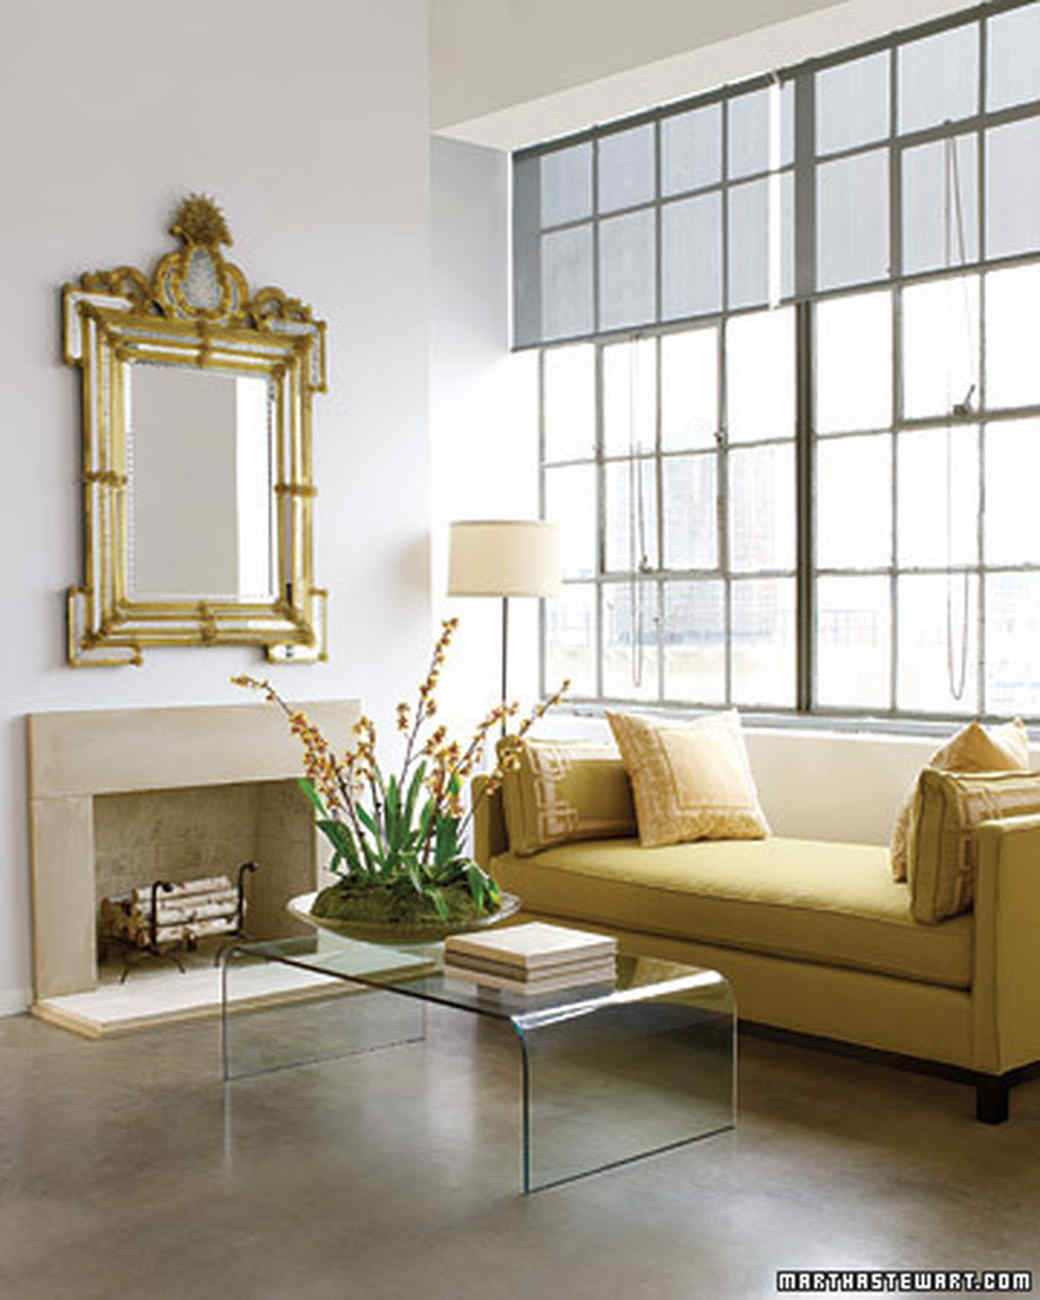 martha stewart living room. Small Living Room  Try These 15 Space Saving Decorating Ideas Martha Stewart